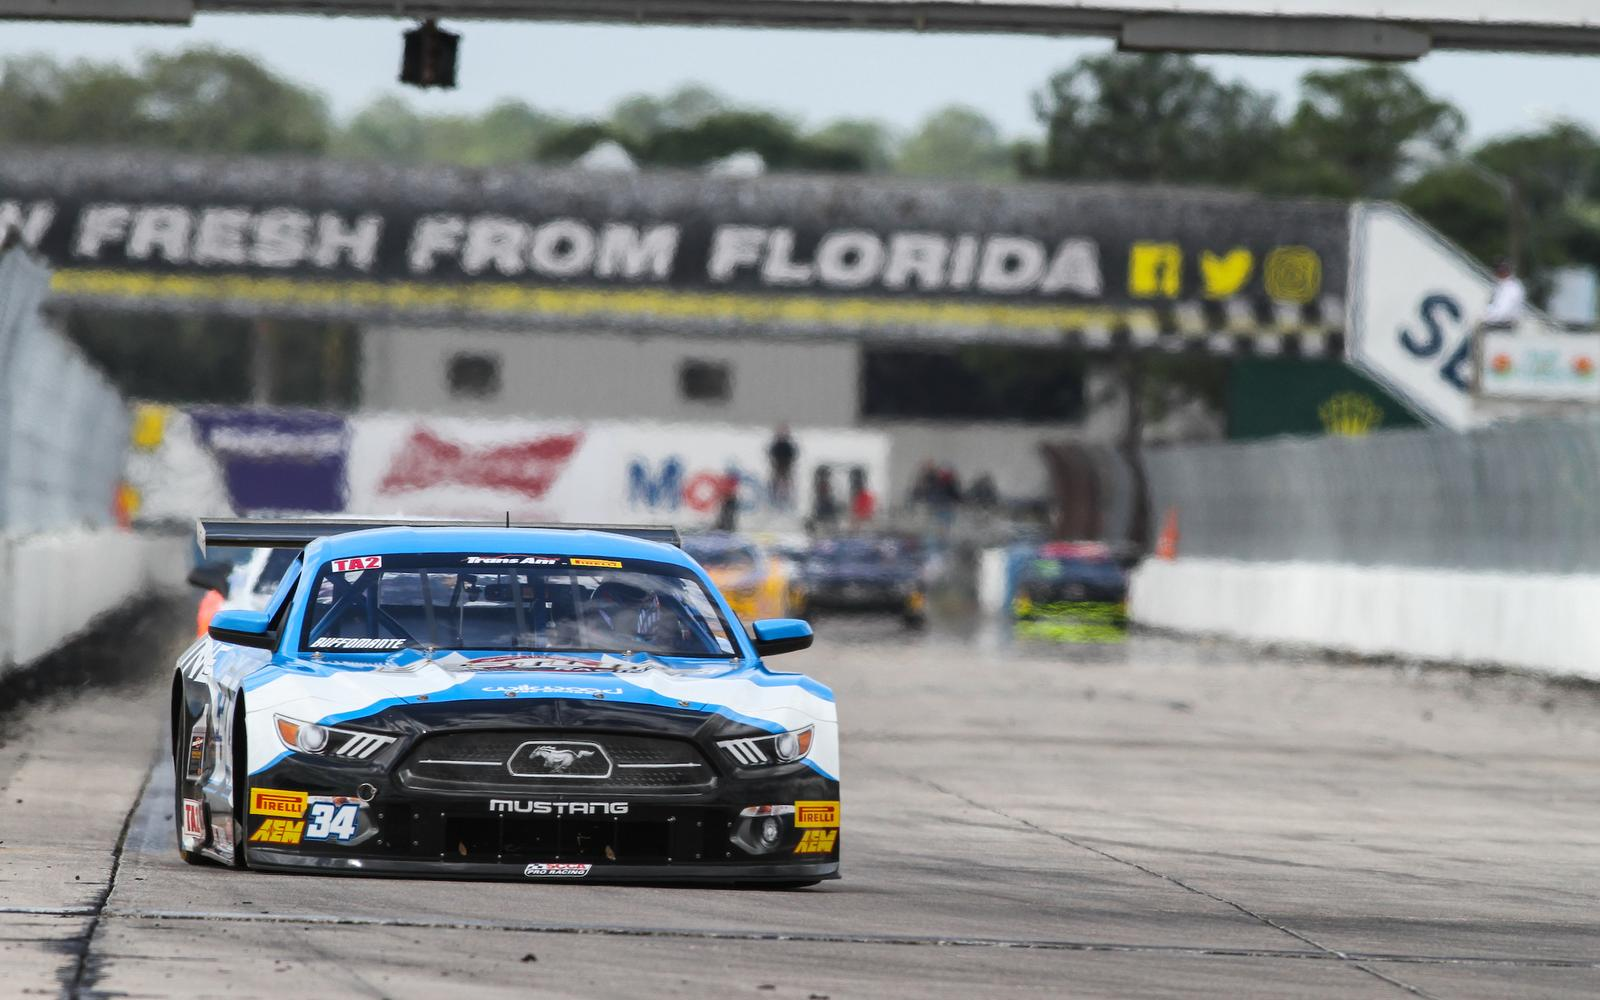 Trans Am to Open 2018 at Sebring International Raceway